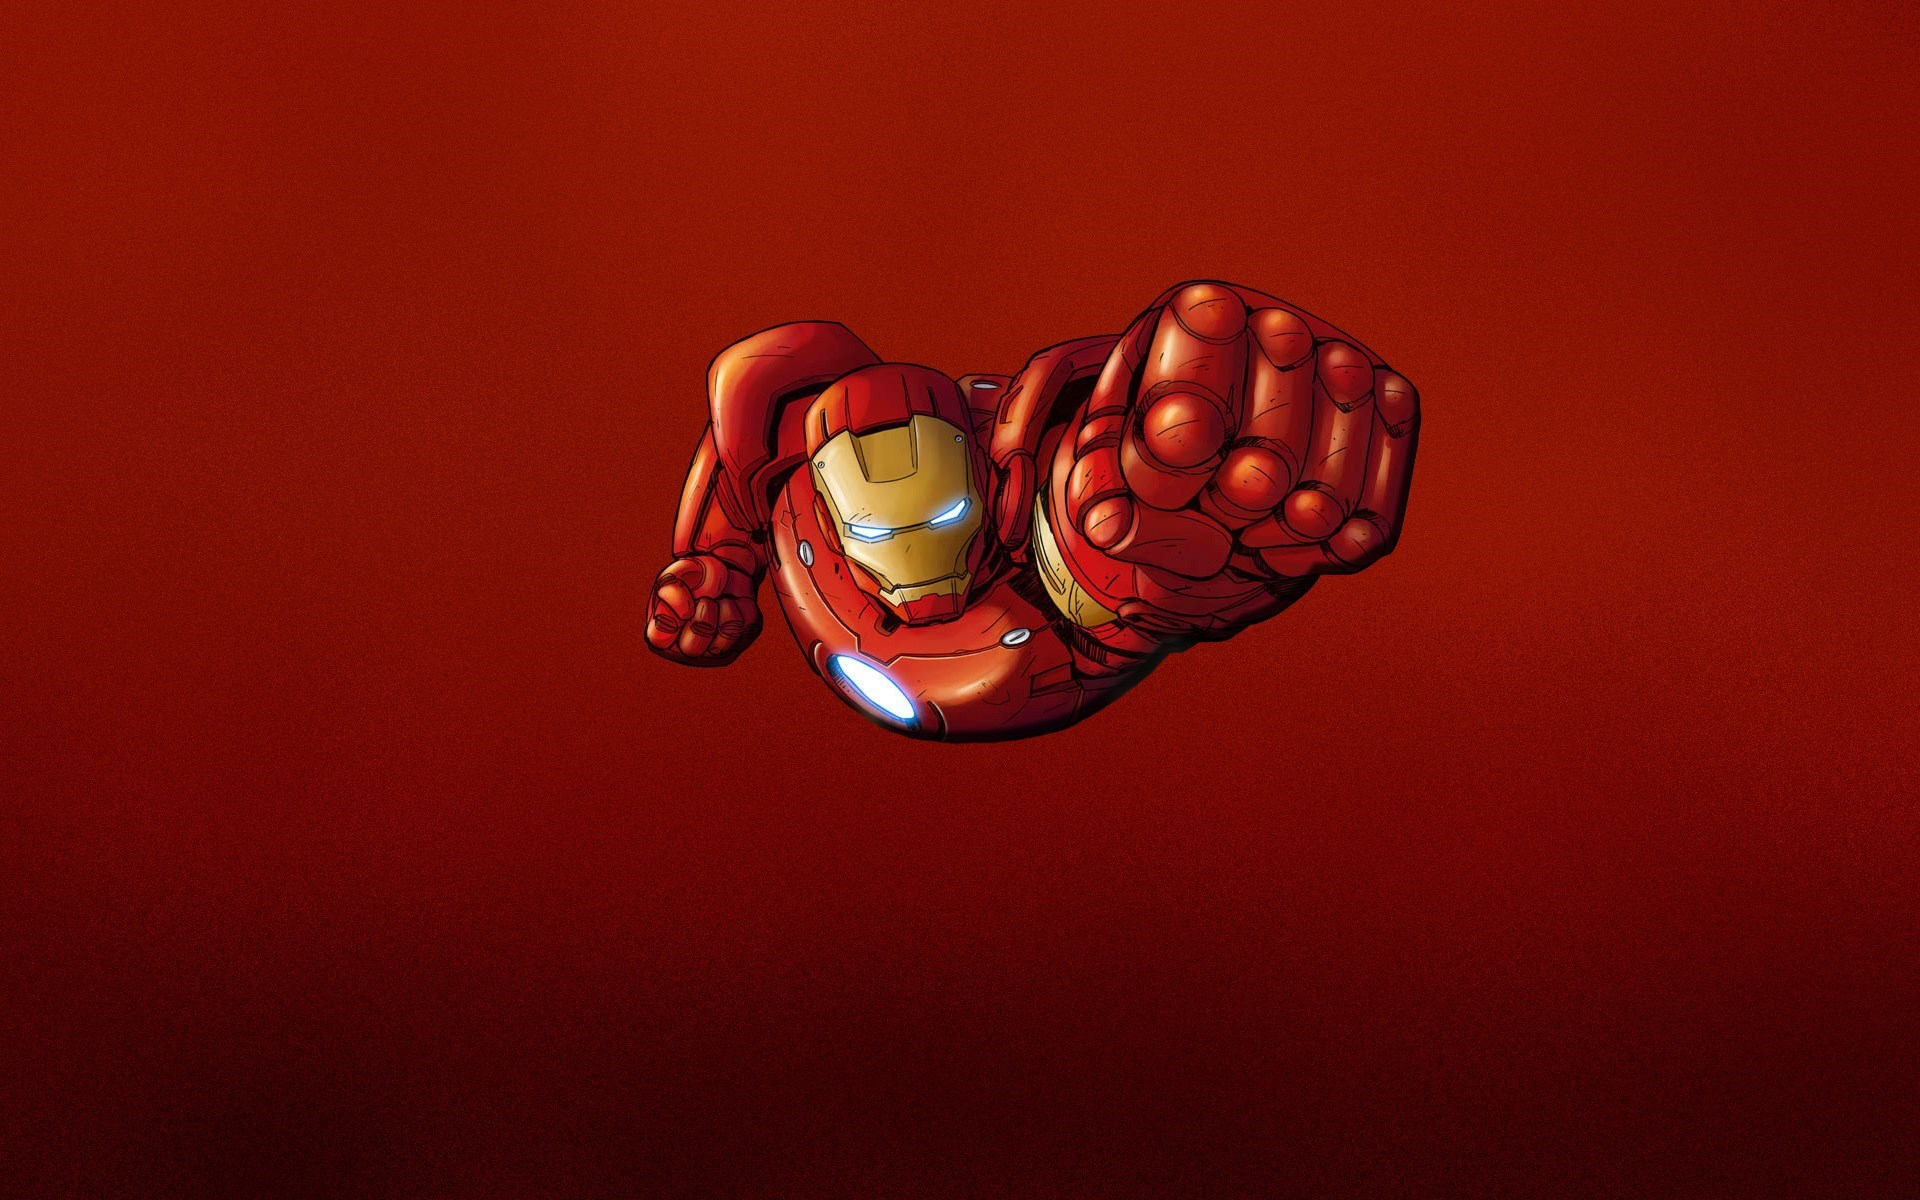 Iron Man Wallpaper 49 1920x1200